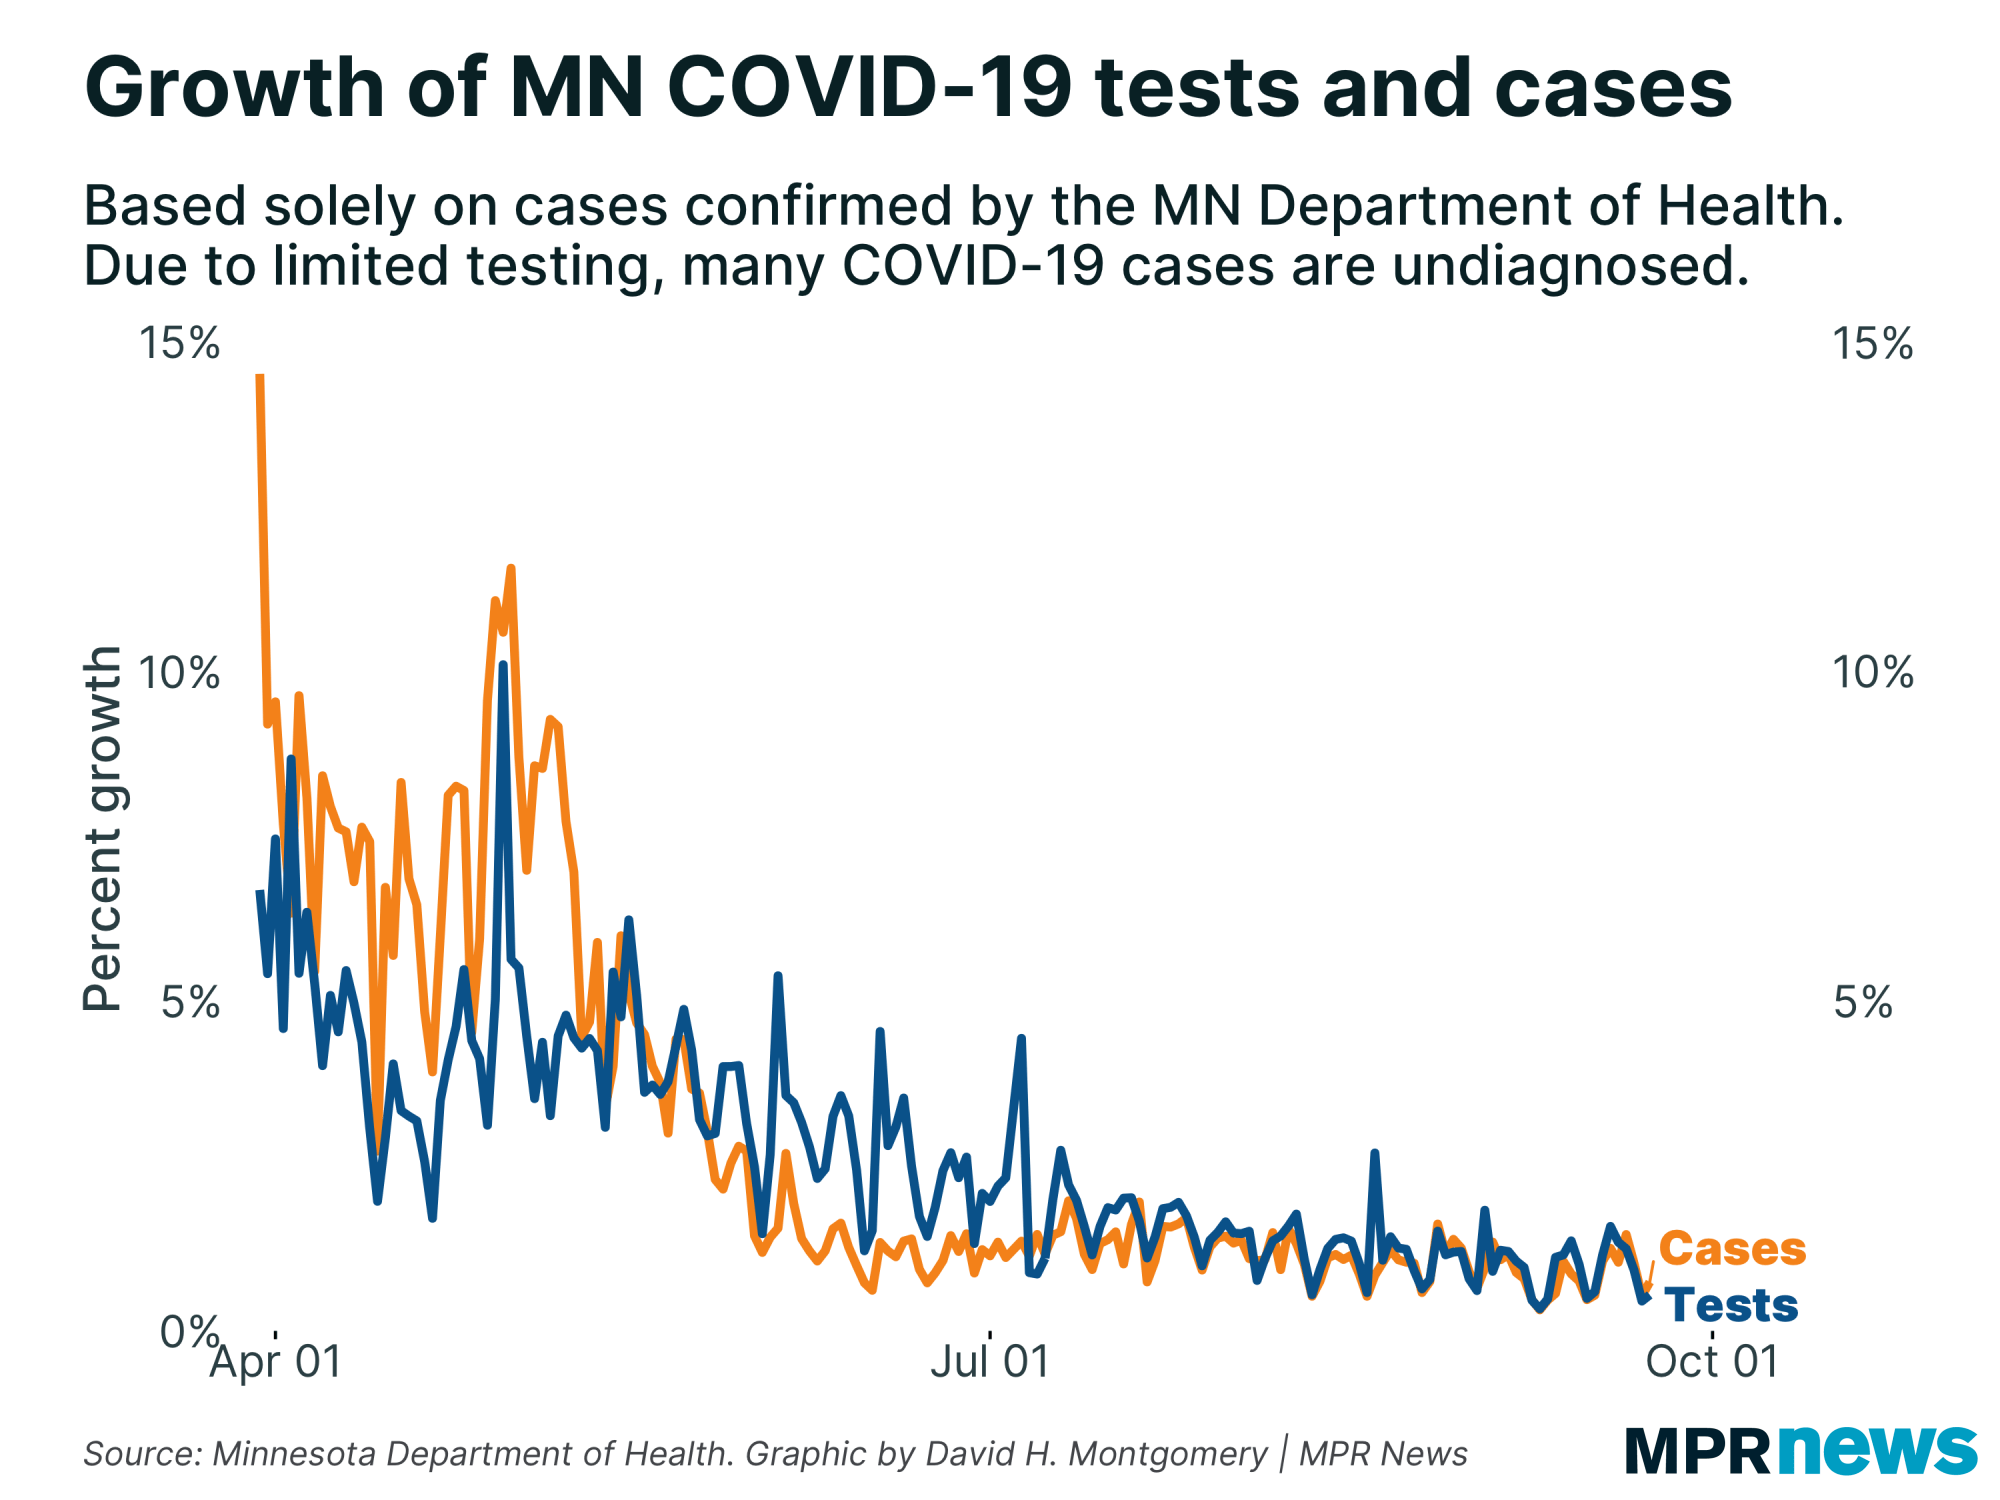 Growth of COVID-19 tests and positive cases in Minnesota.